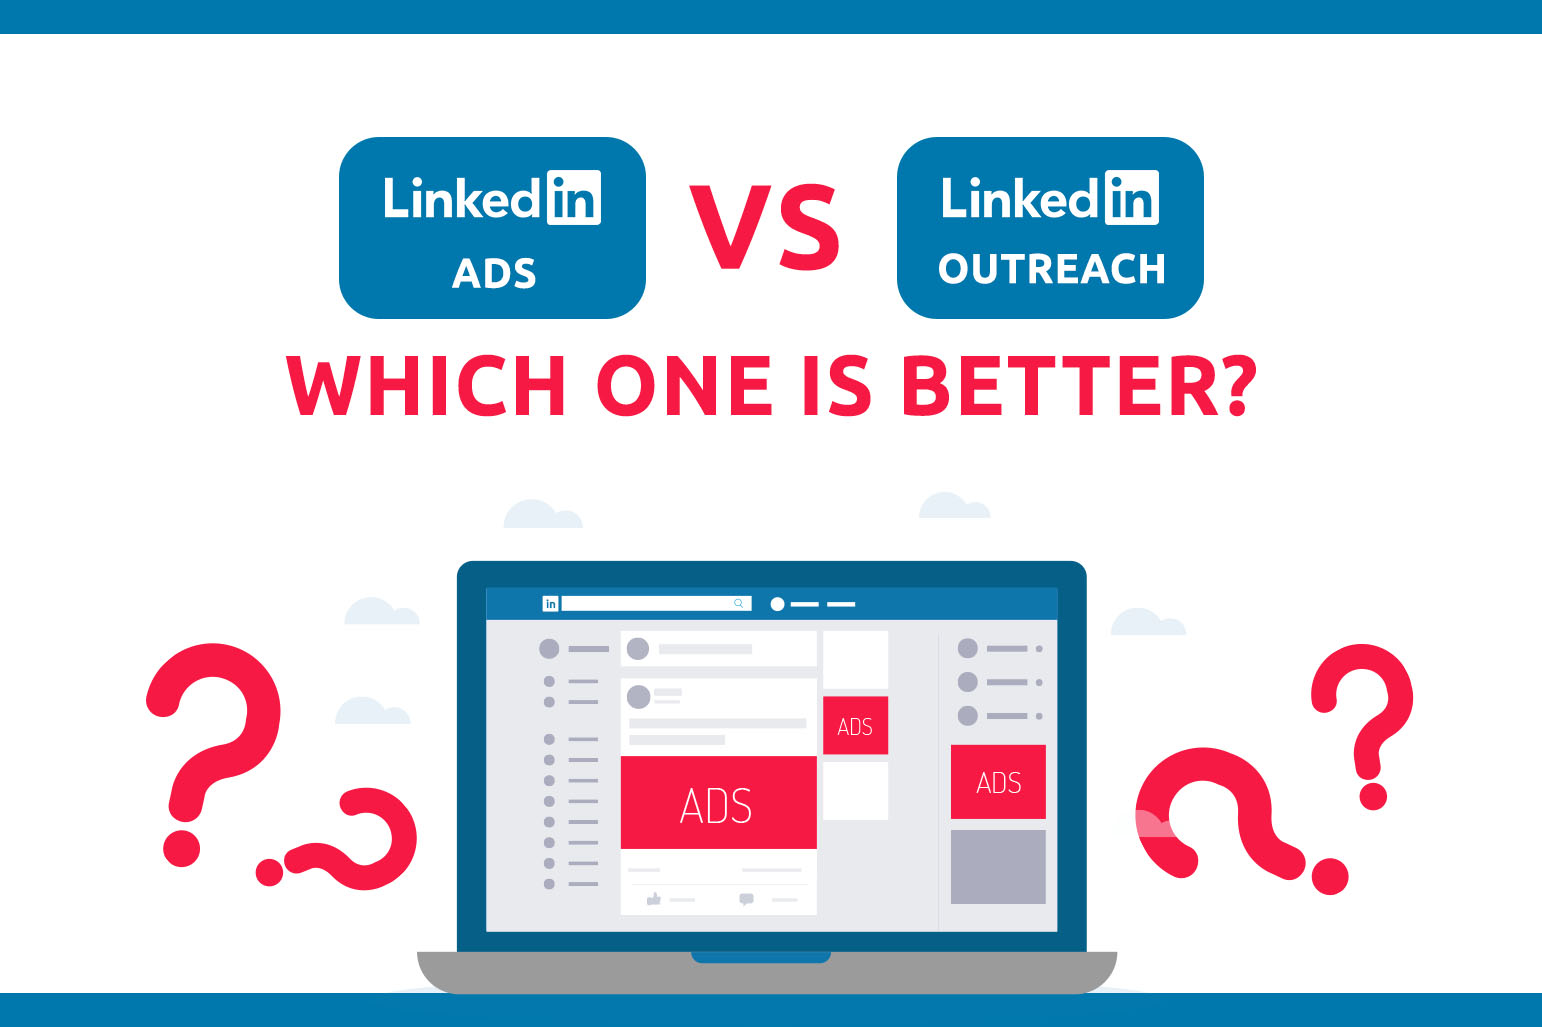 LinkedIn Ads Vs. LinkedIn Outreach: Which One Is better?